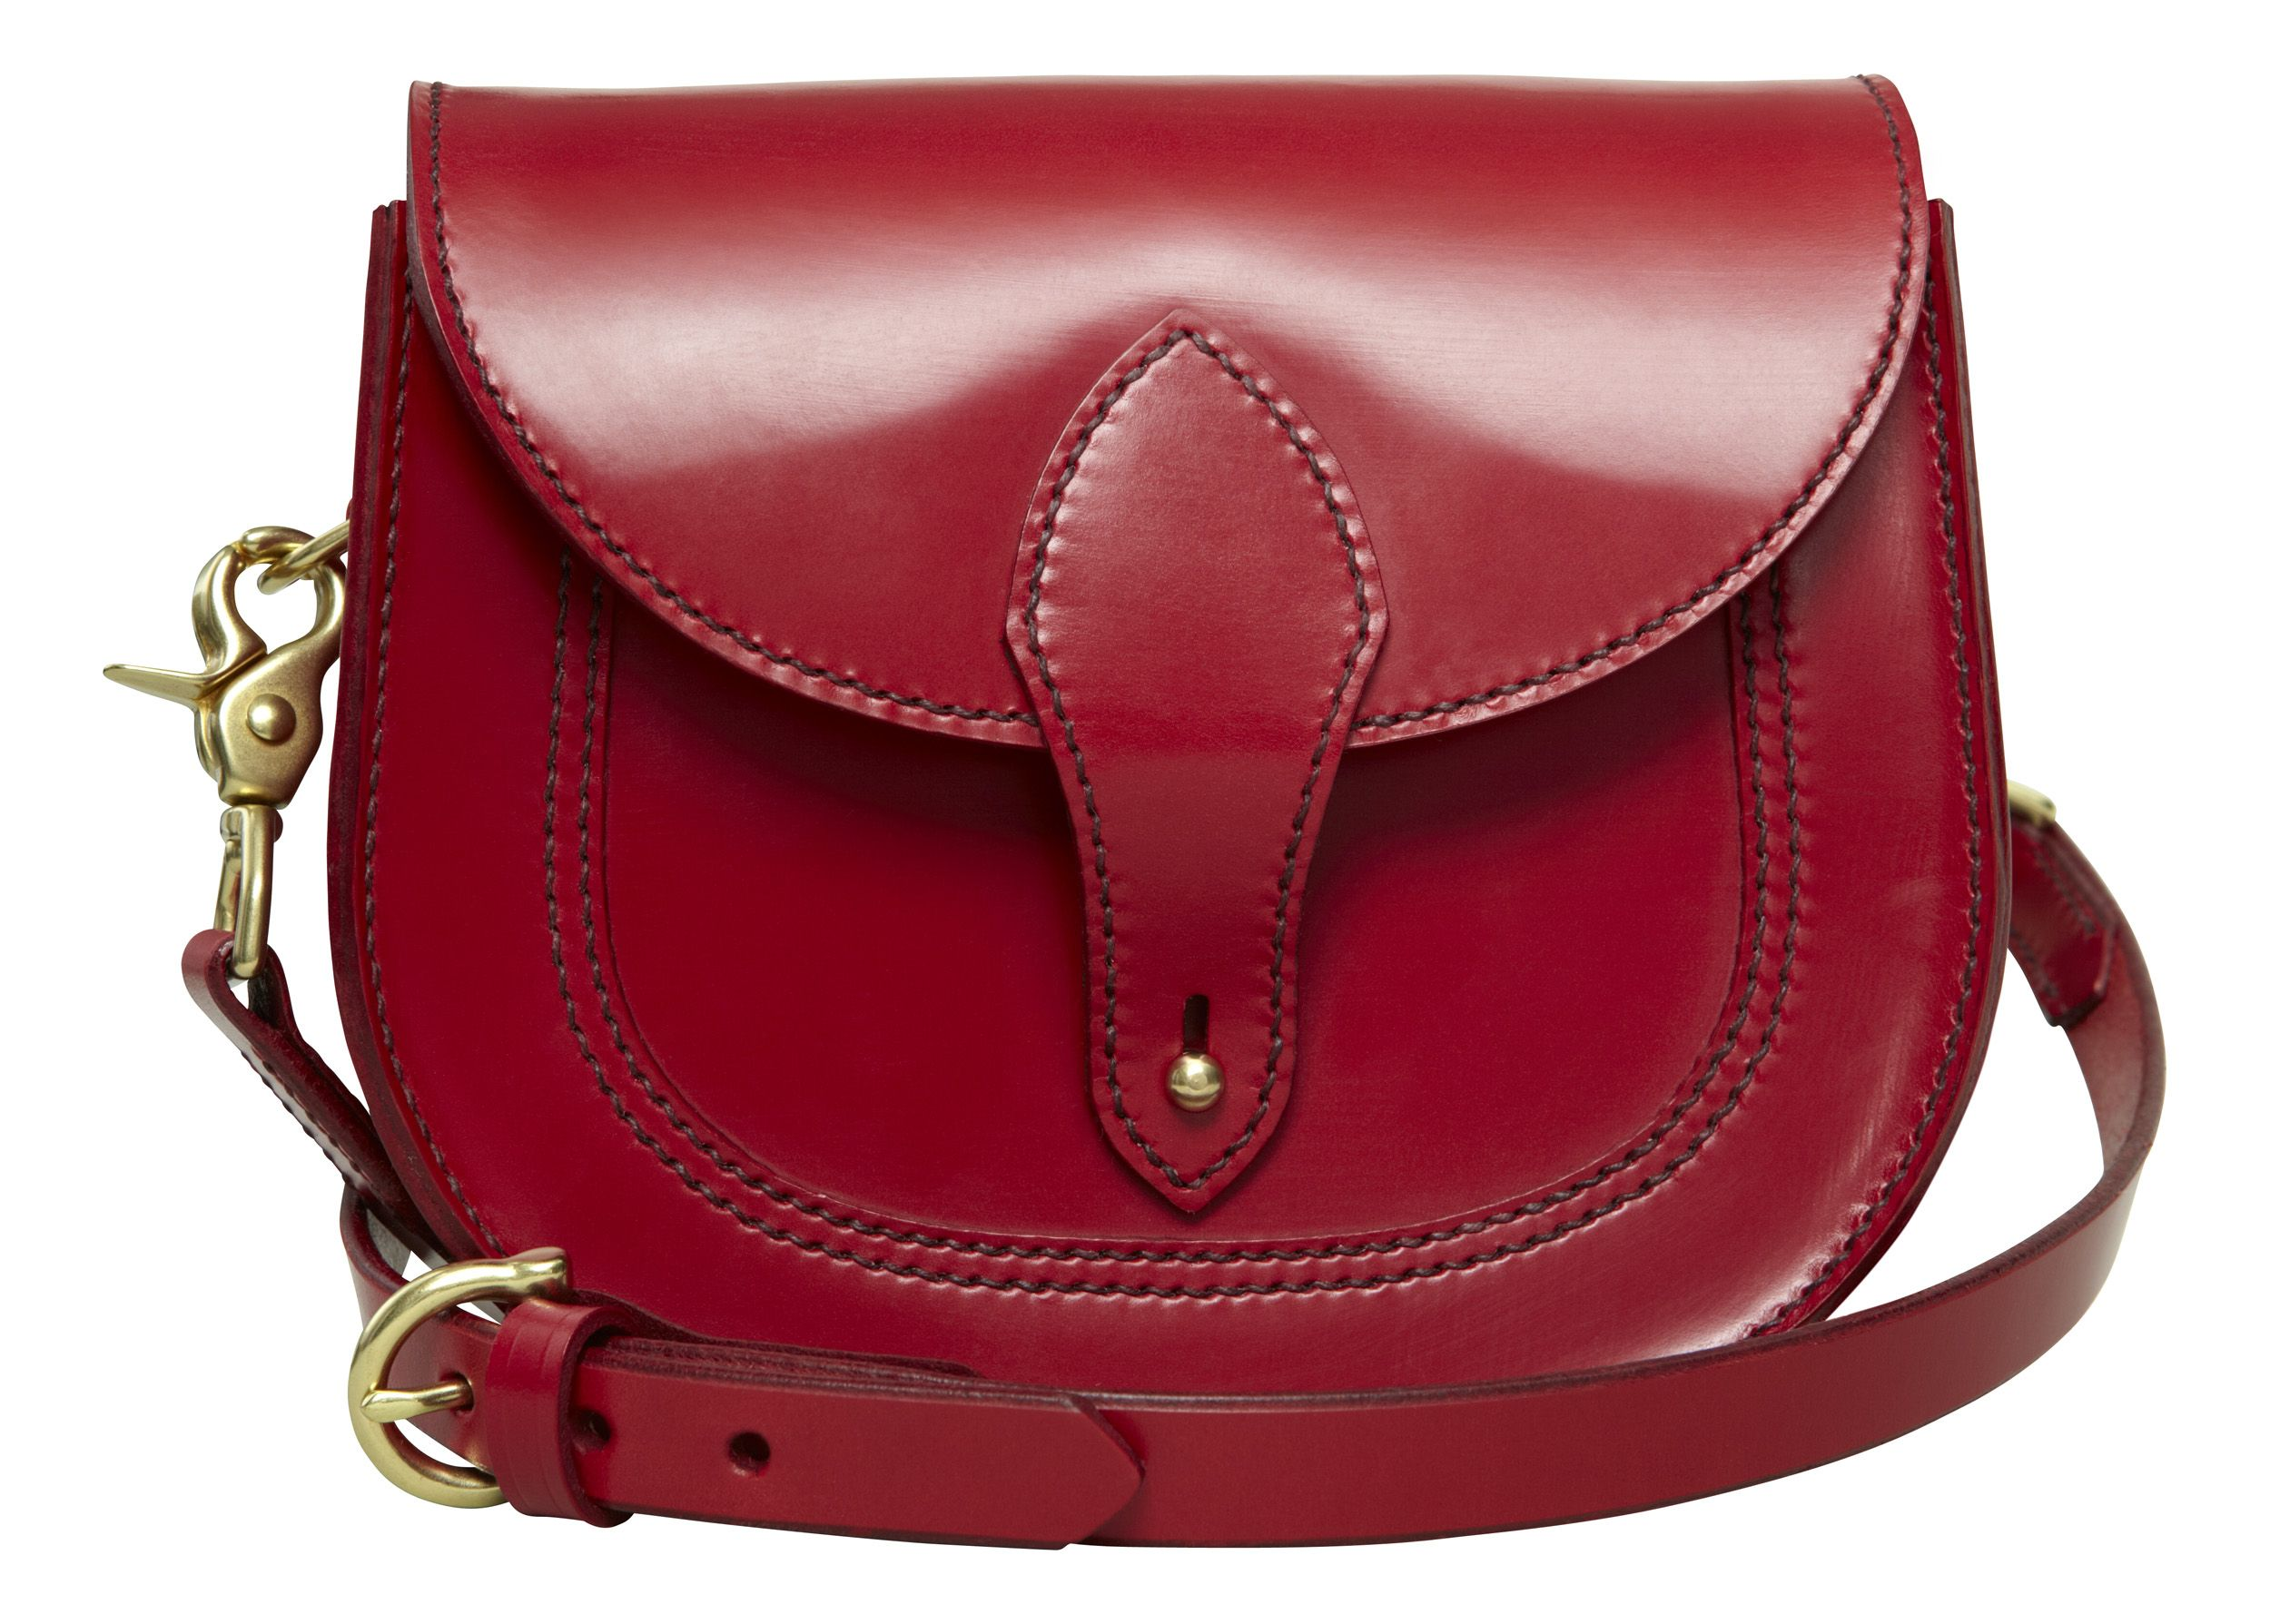 THE OWL satchel in red English bridle leather by HANSON OF LONDON #leathercraft #handmade #madeinengland #bespoke